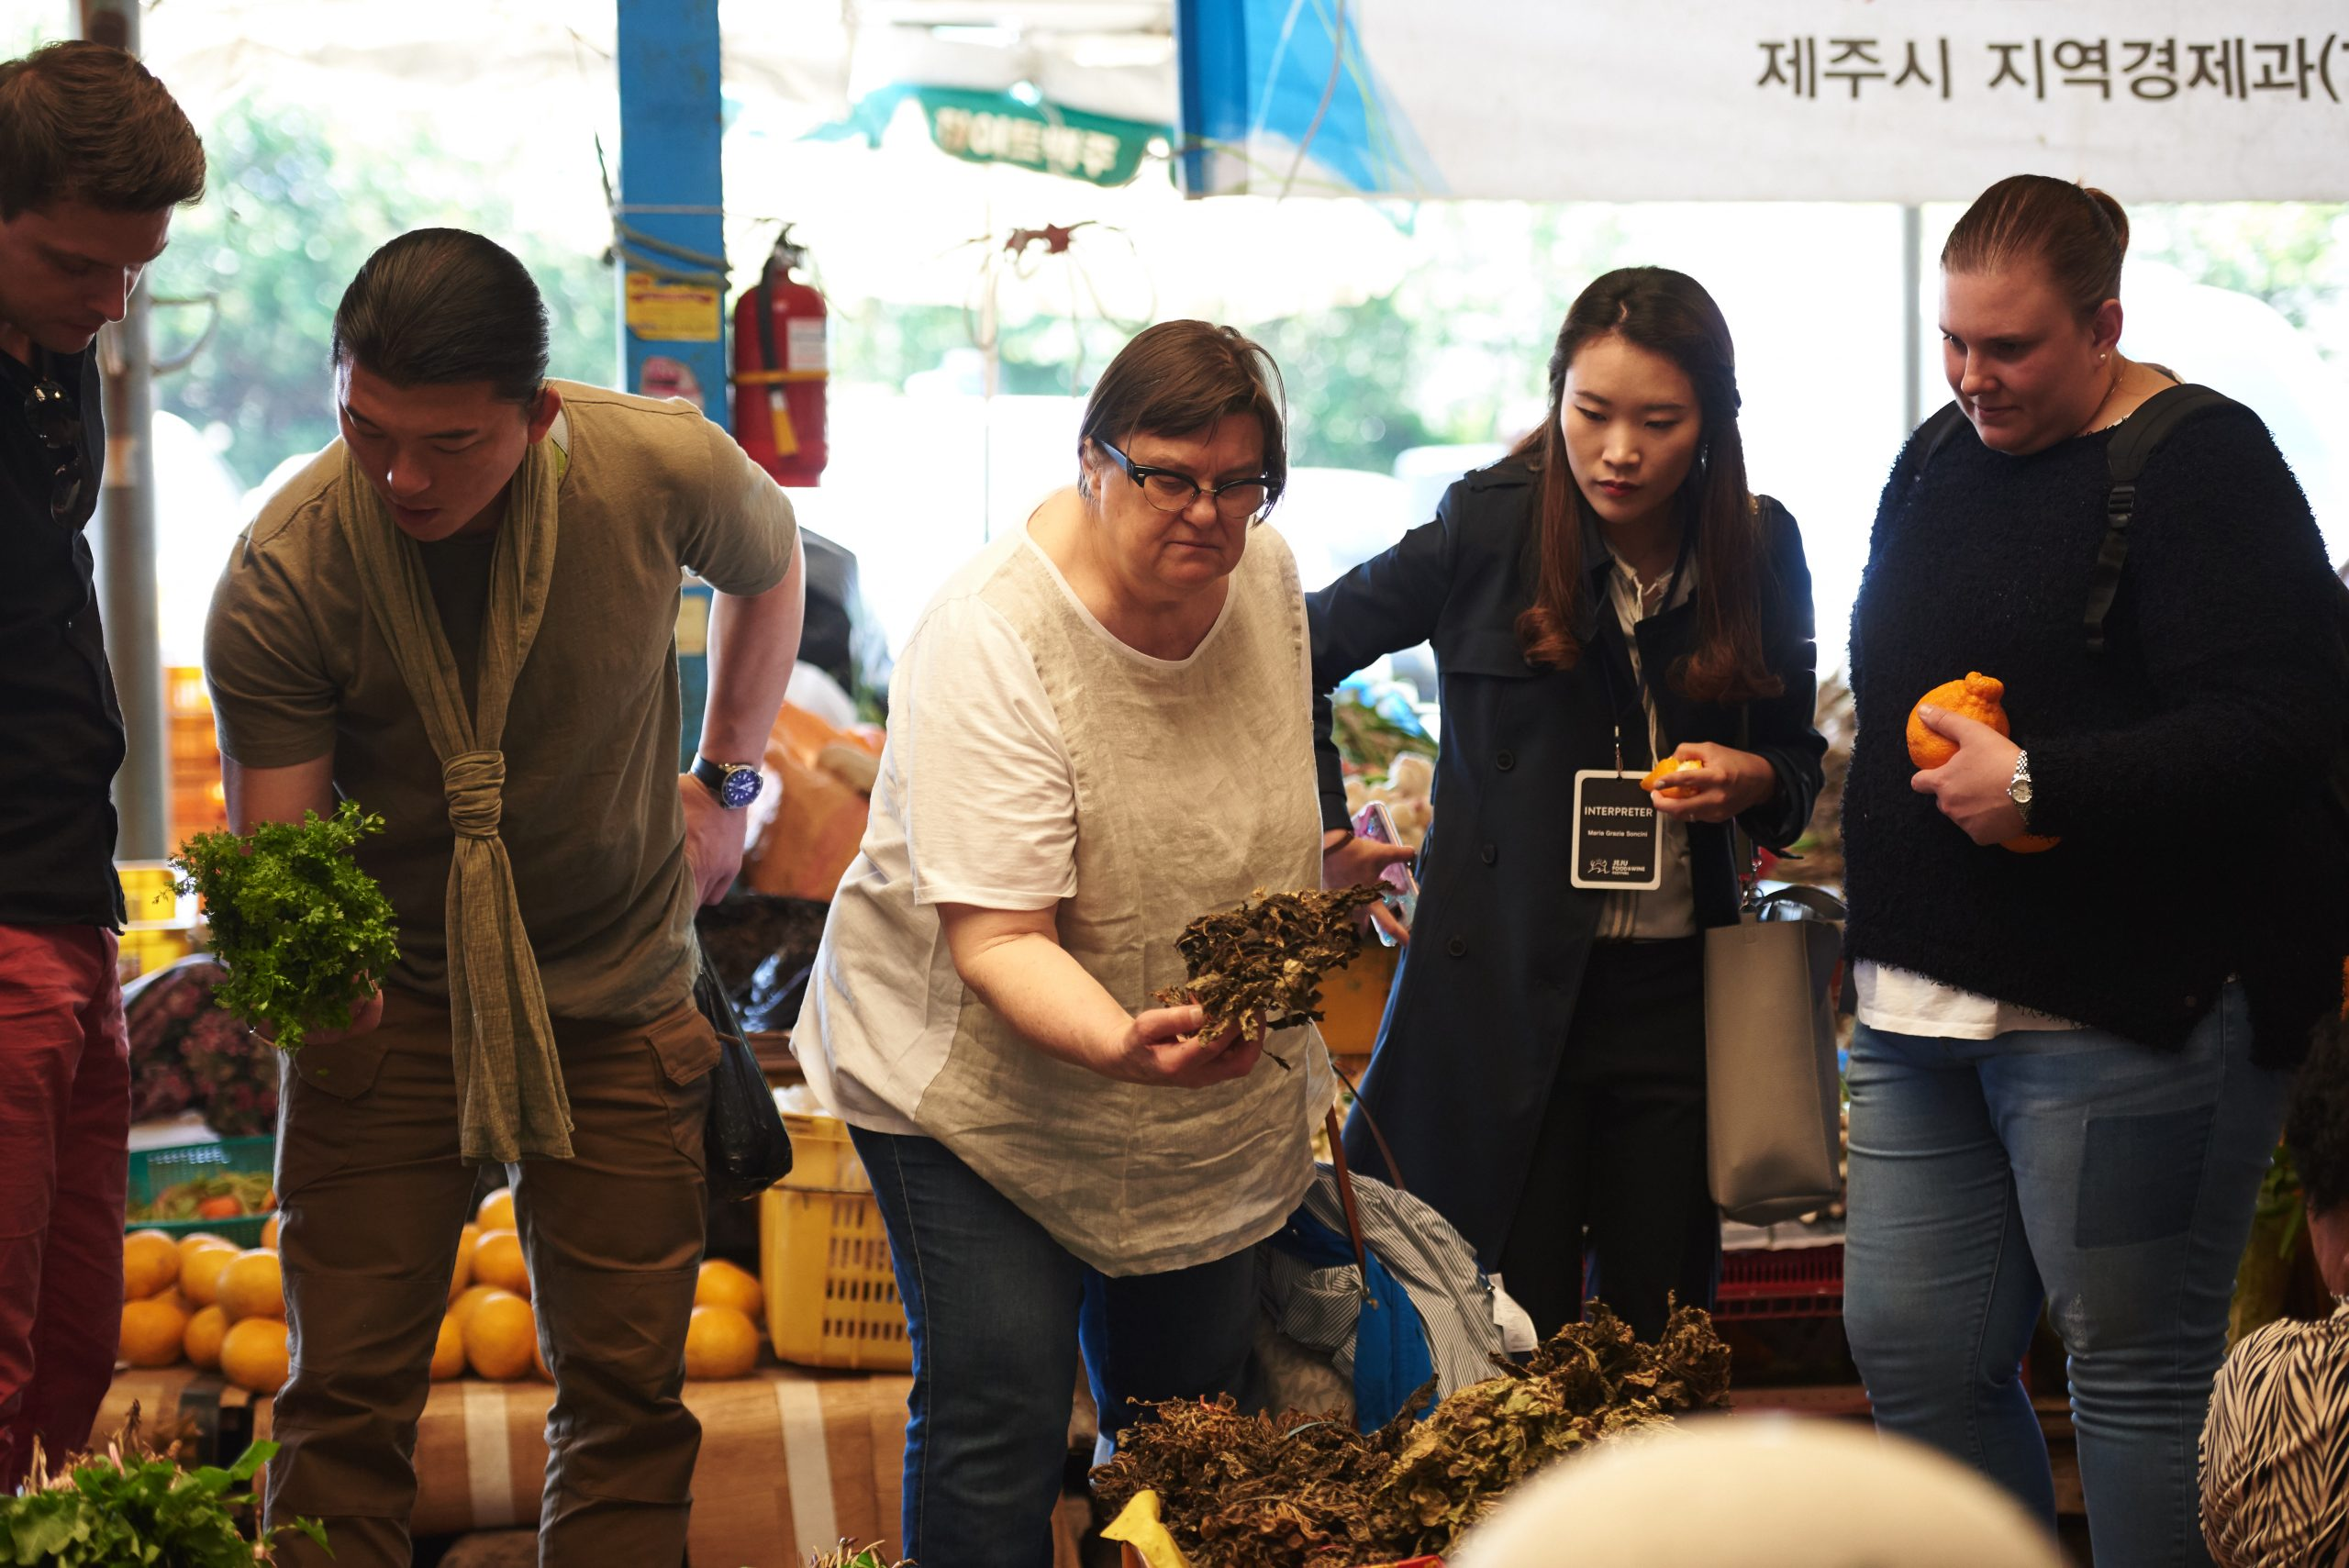 Tony Yoo, Michael Ashminov and Maria Songcini Chef's tour of the Jeju market that opens every five days